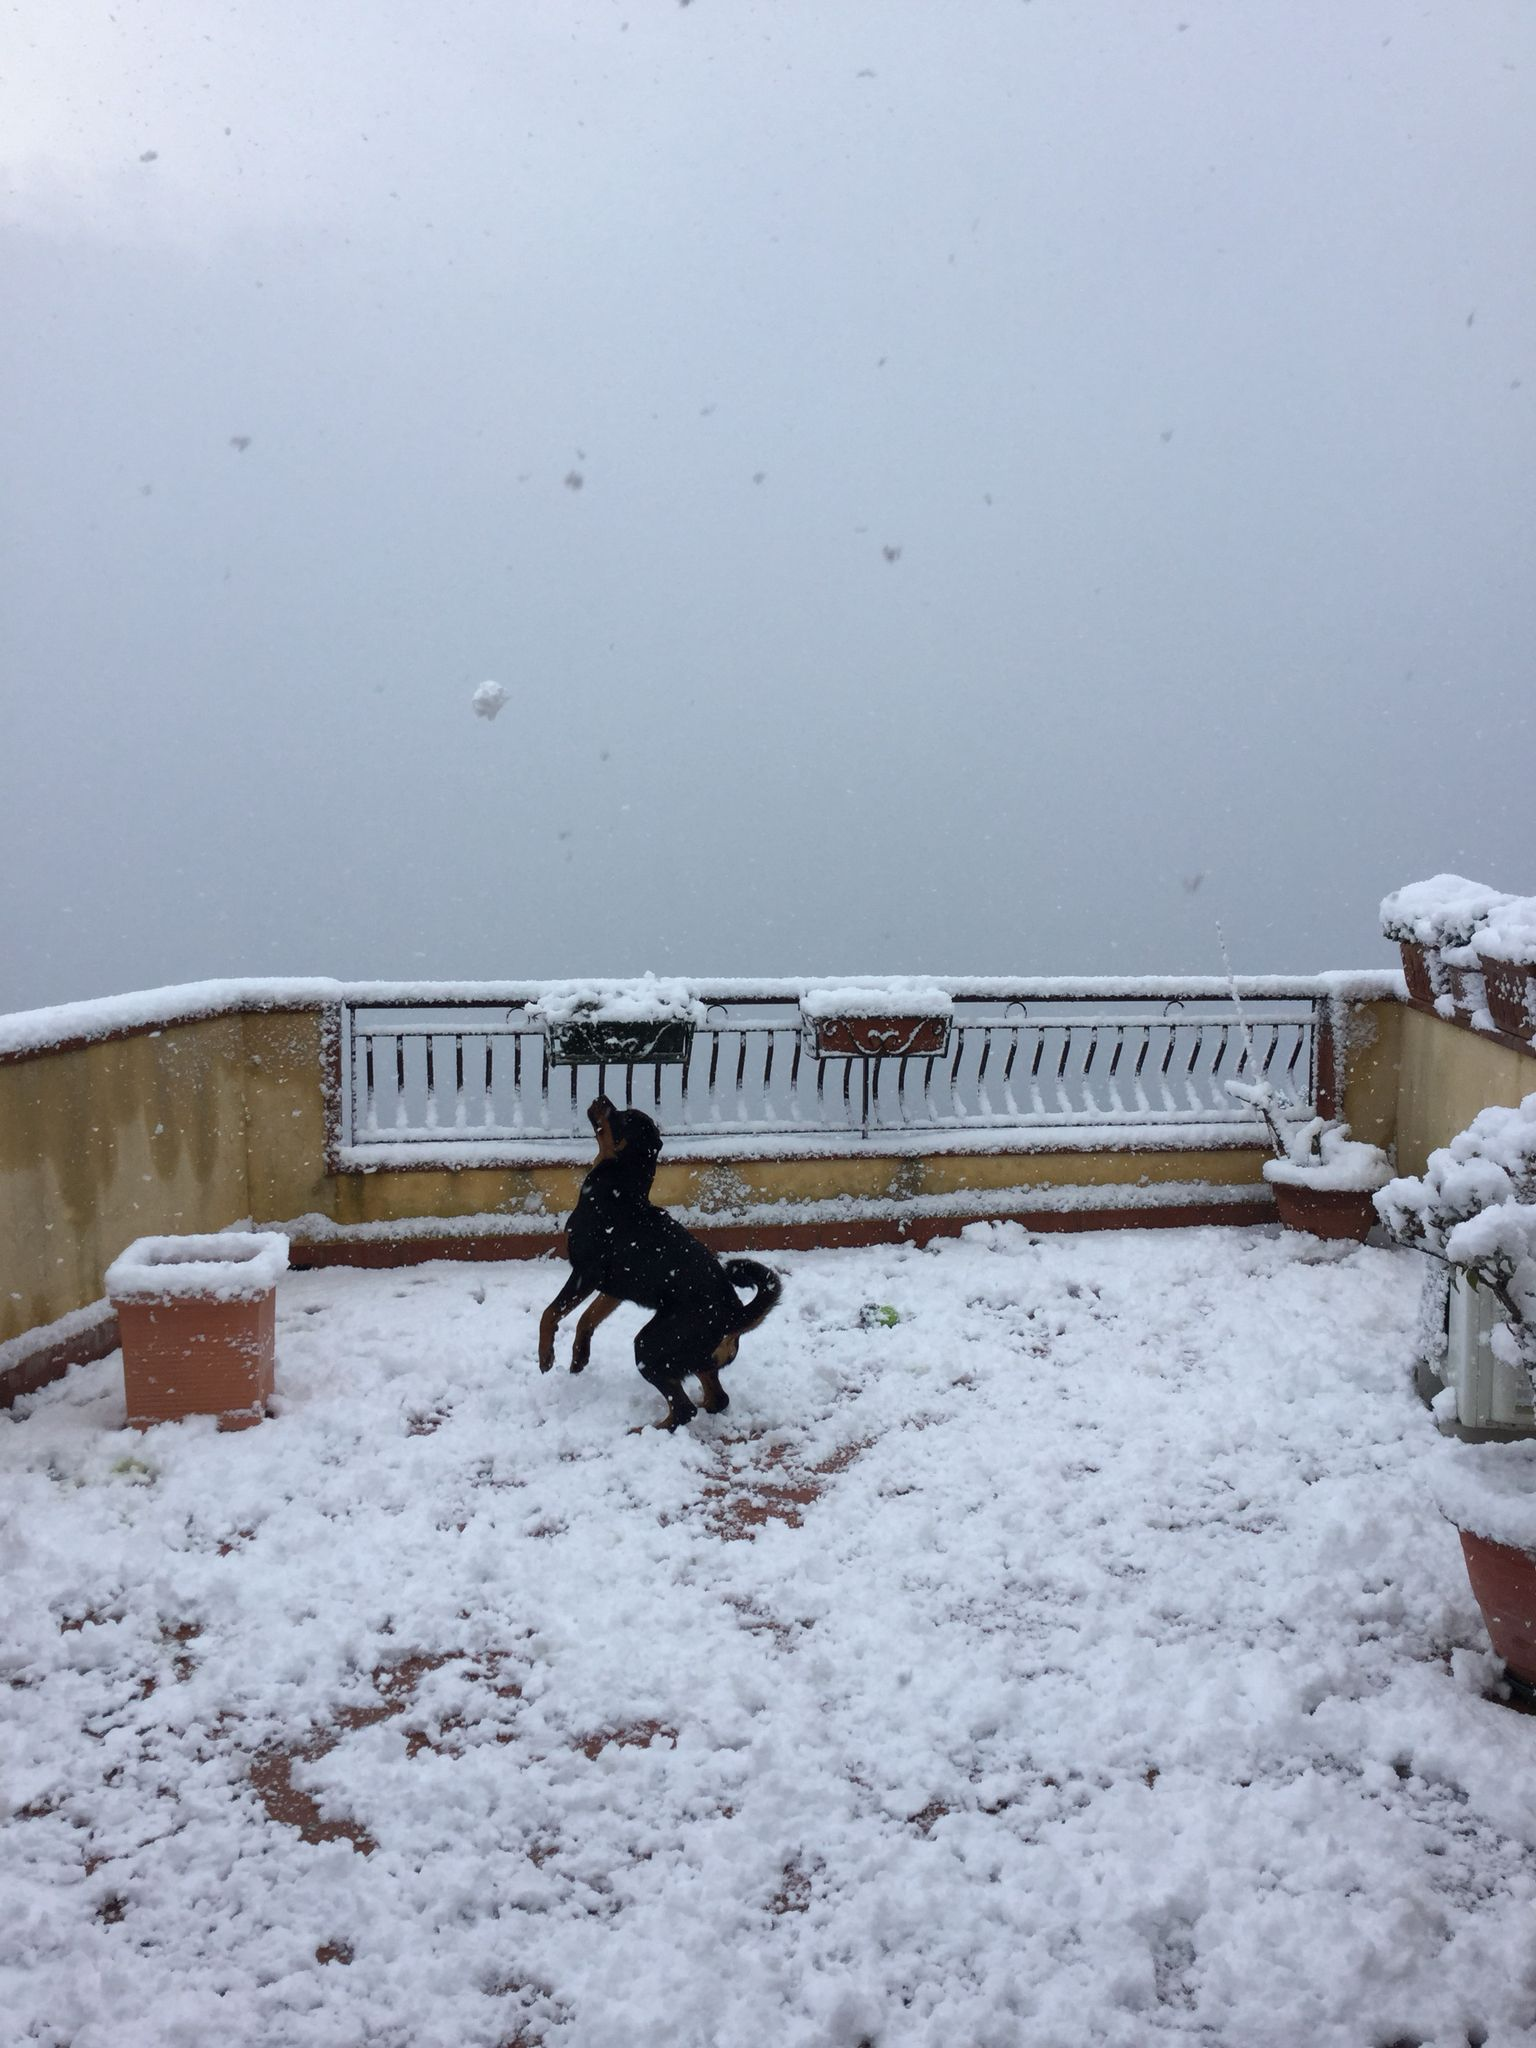 My Rottweiler playing under the snow